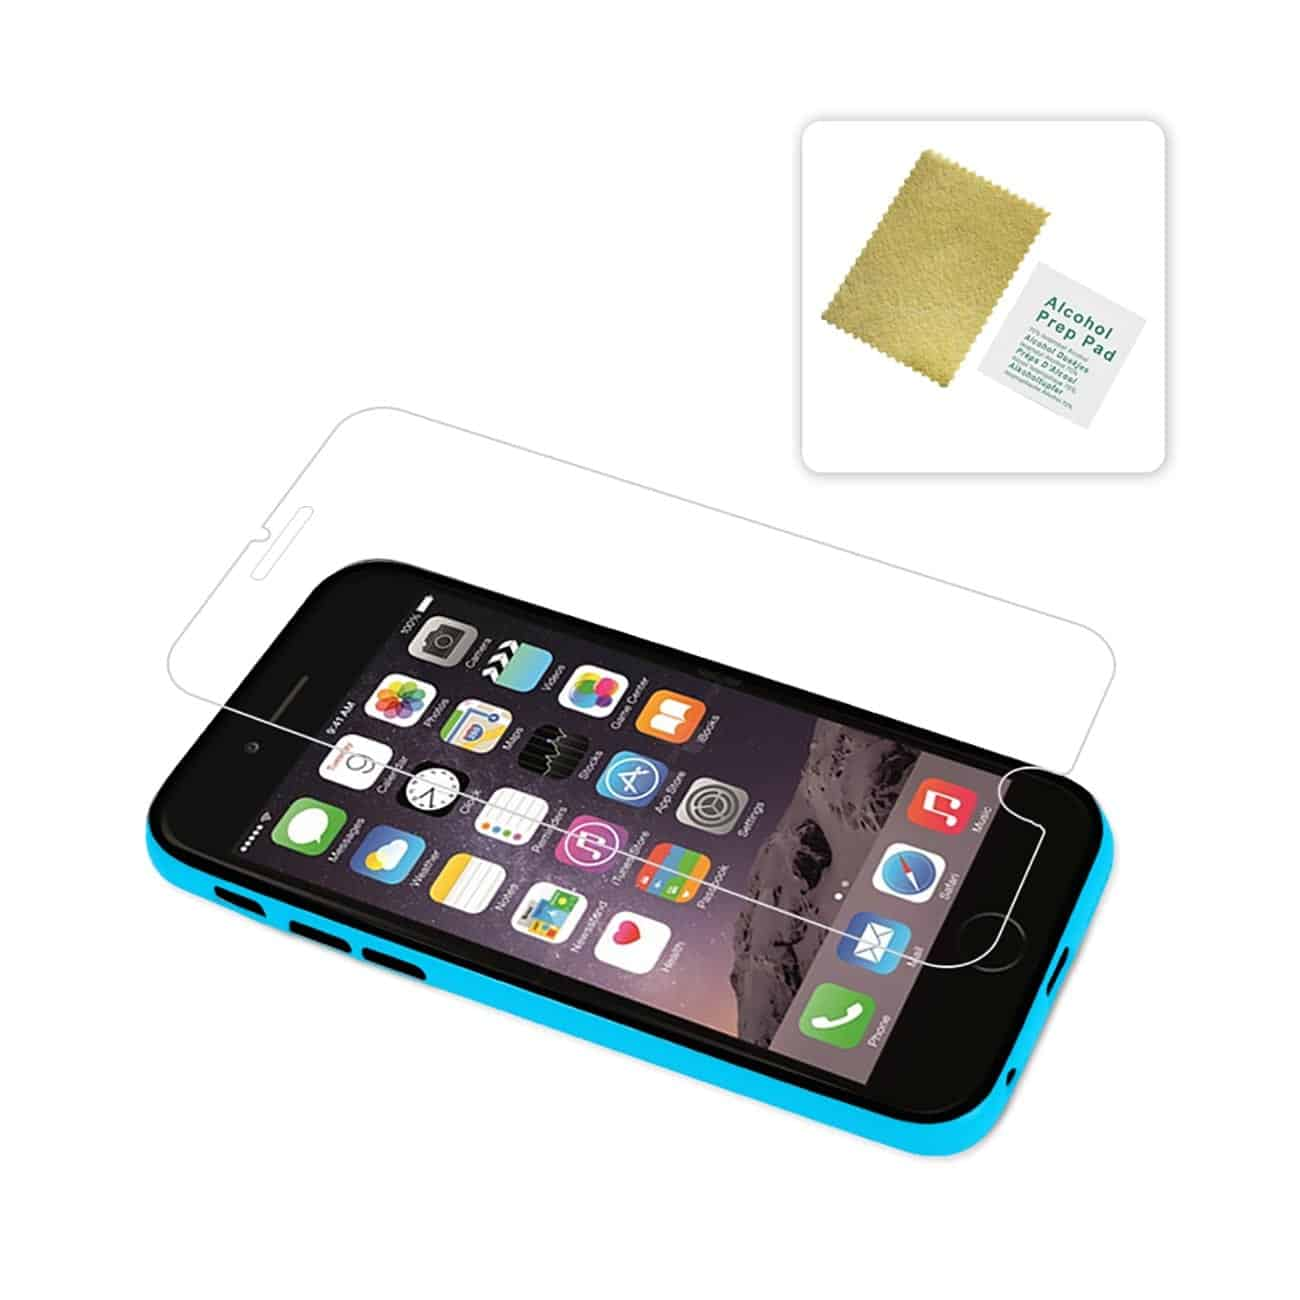 IPHONE 6 BUMPER CASE WITH TEMPERED GLASS SCREEN PROTECTOR IN BLUE